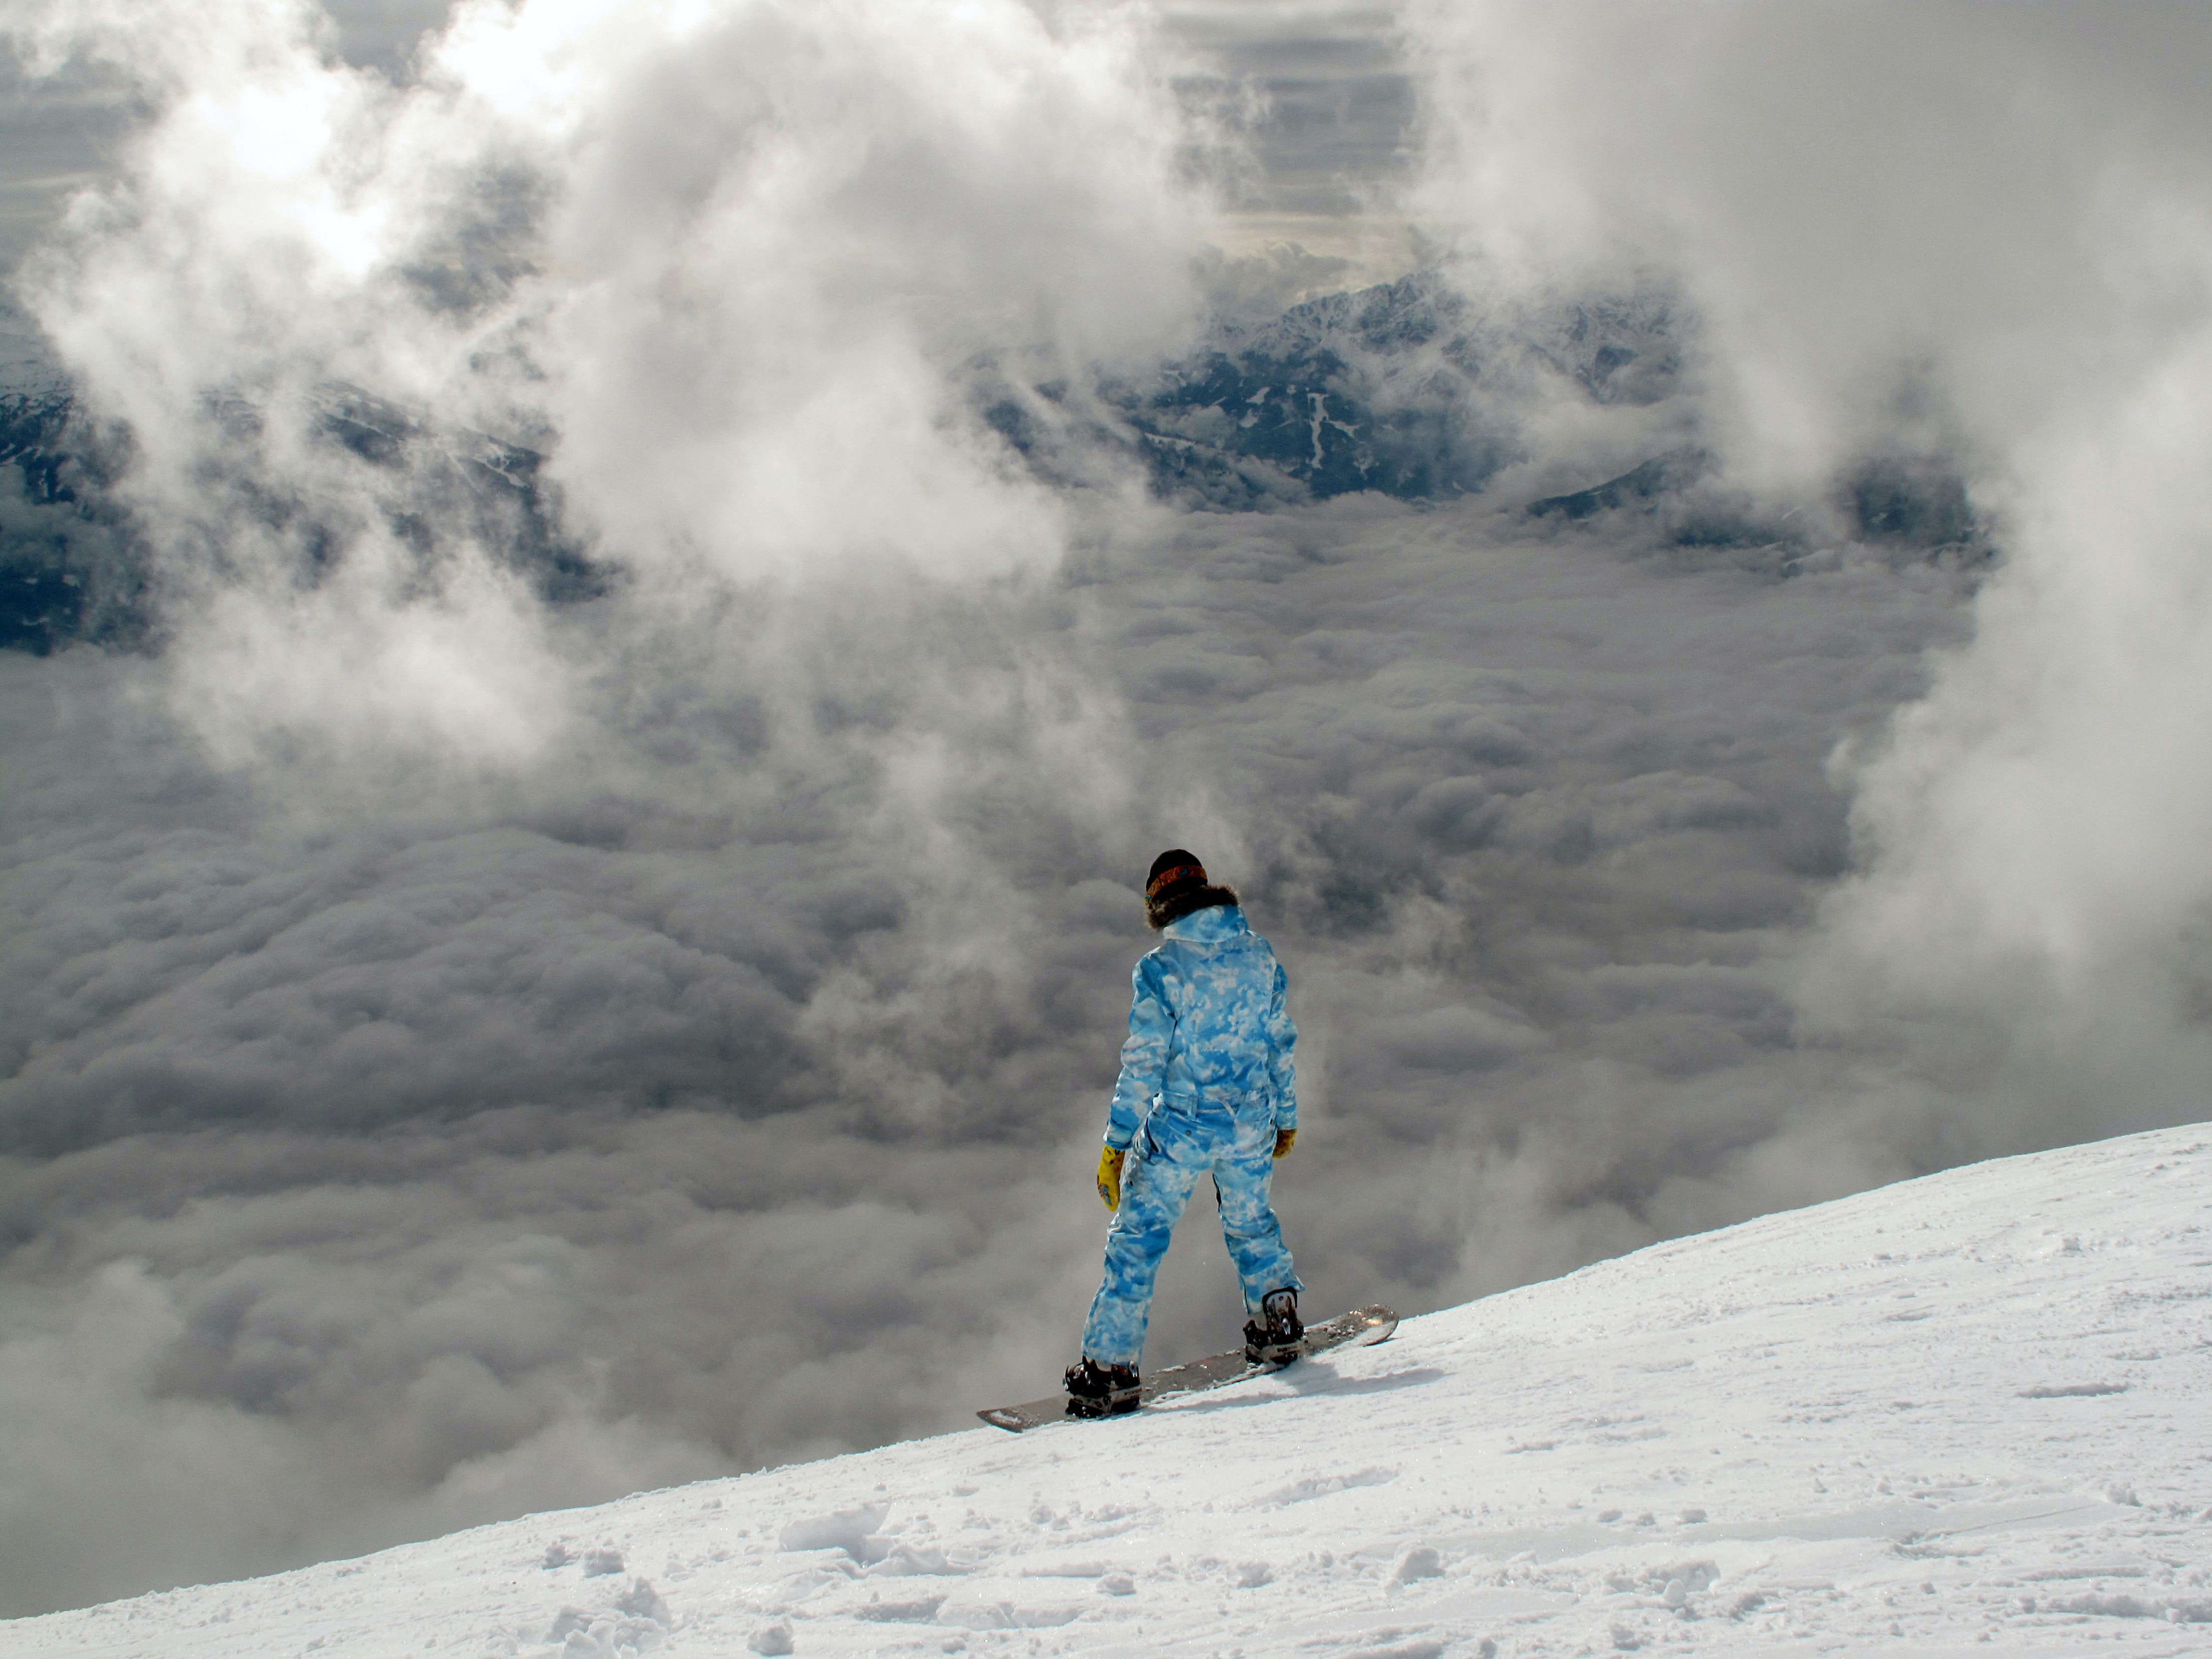 A snowboarder overlooking a cloudy and snow covered hill